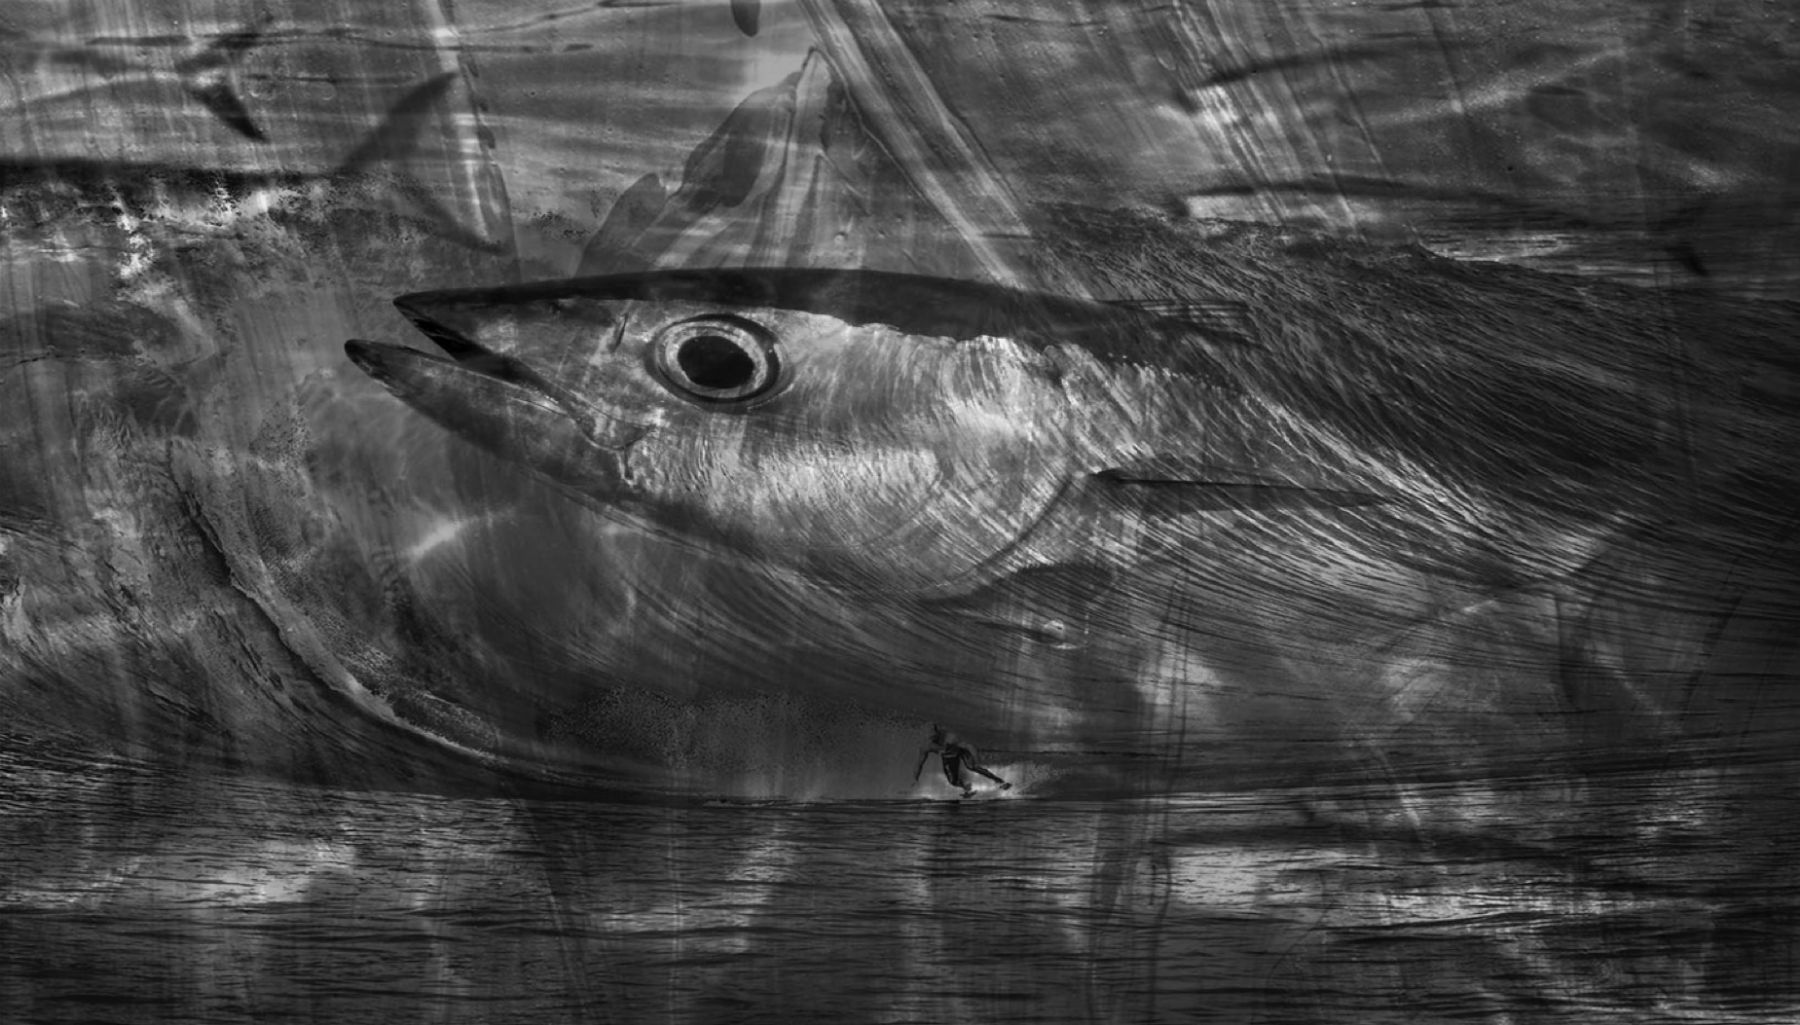 Abstract Fish with Surfer B&W